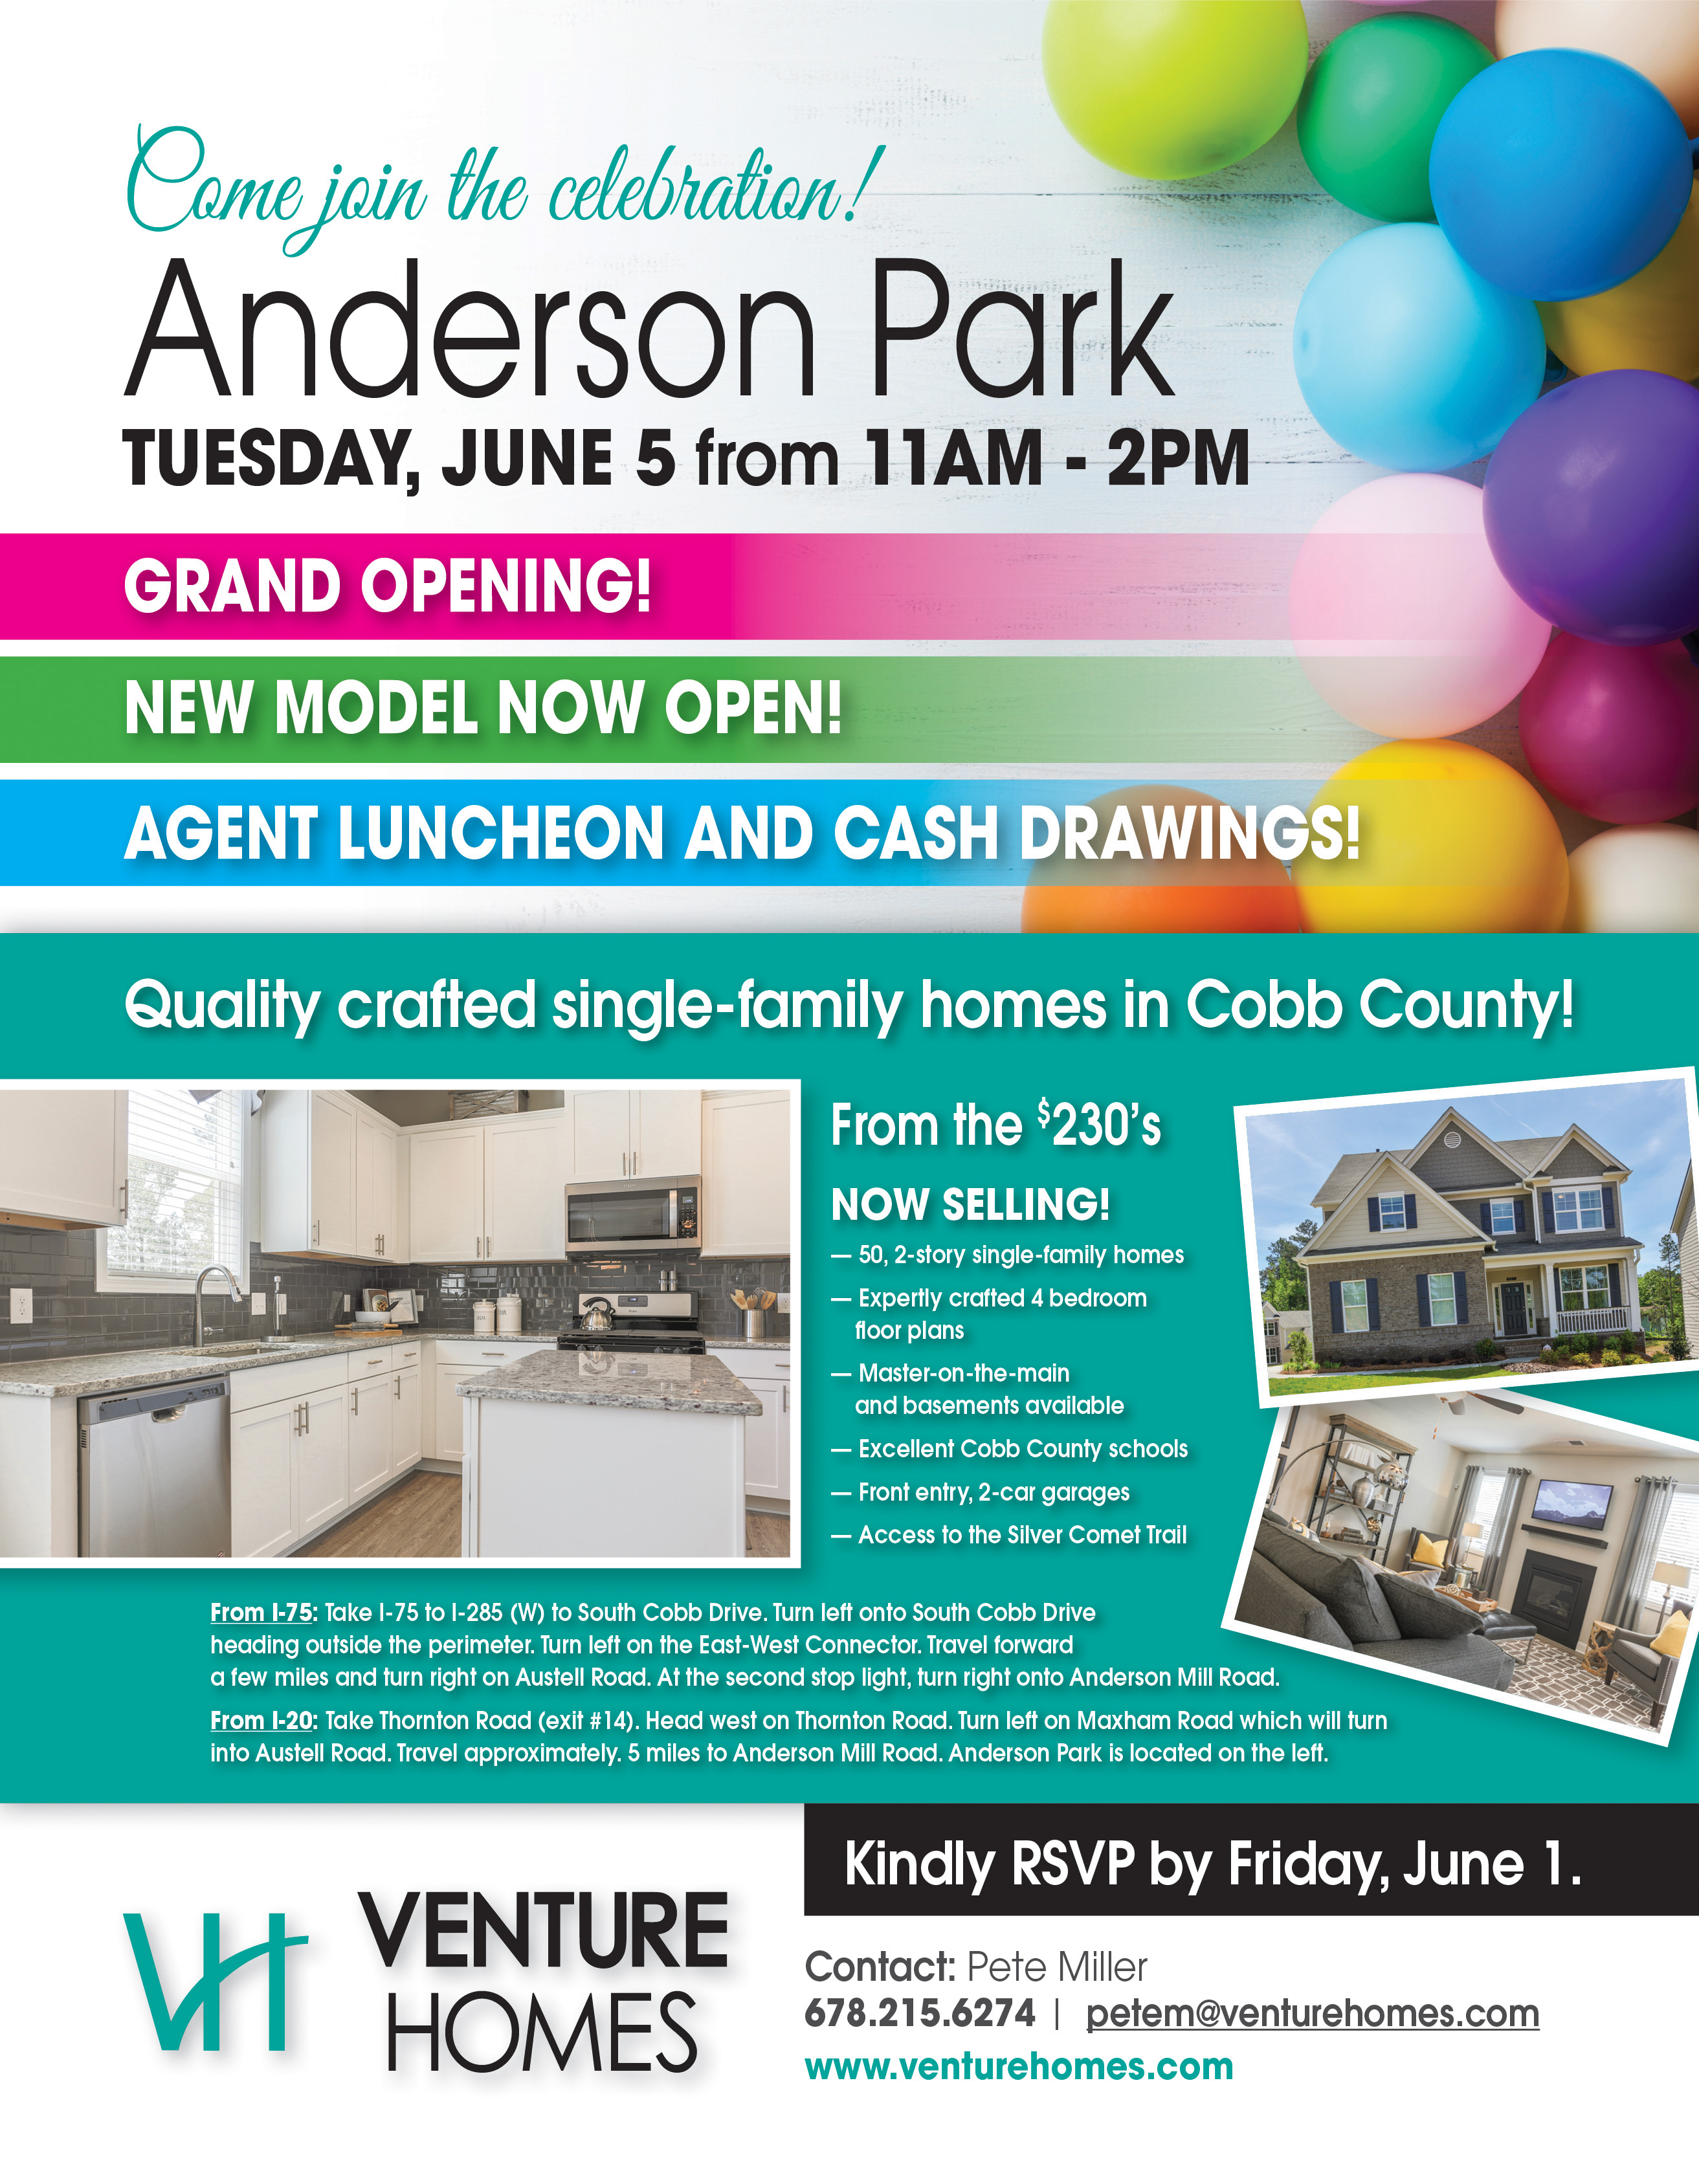 Anderson Park Grand Opening Flyer